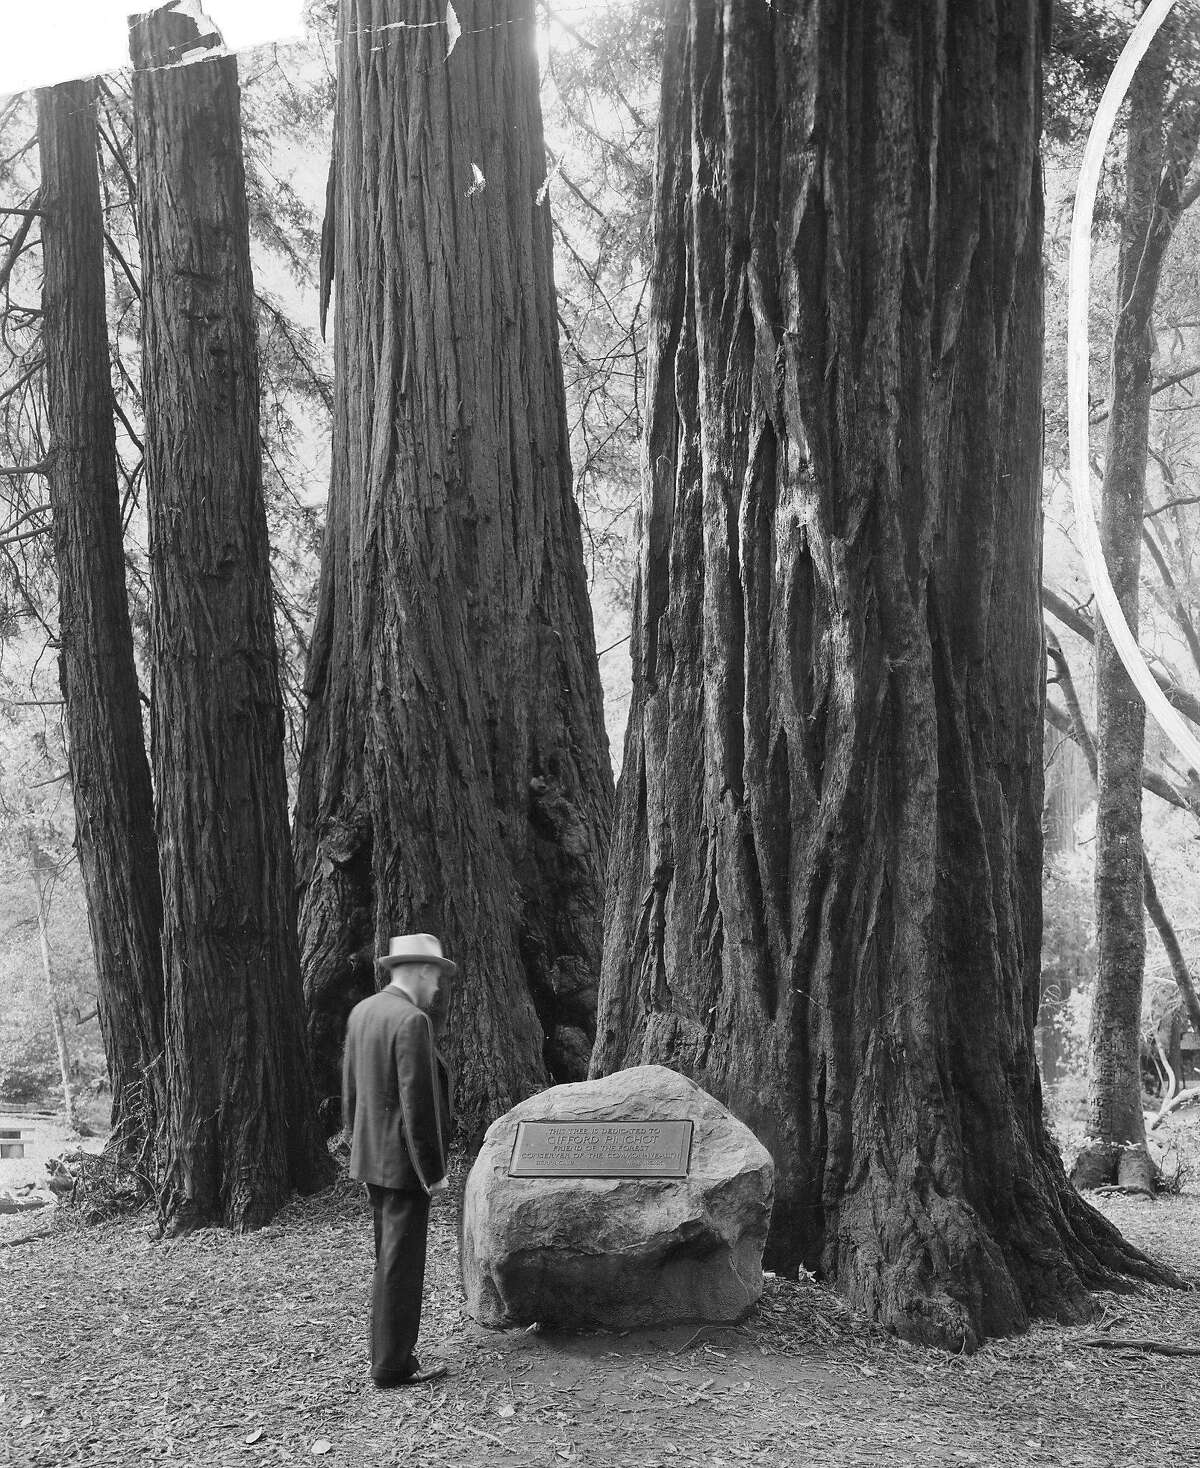 Muir Woods National Monument, Jan 8, 1939, as the toll road that goes to Muir Woods is soon to become a unit of the State highway system,allowing free access to and from the monument Handout photo